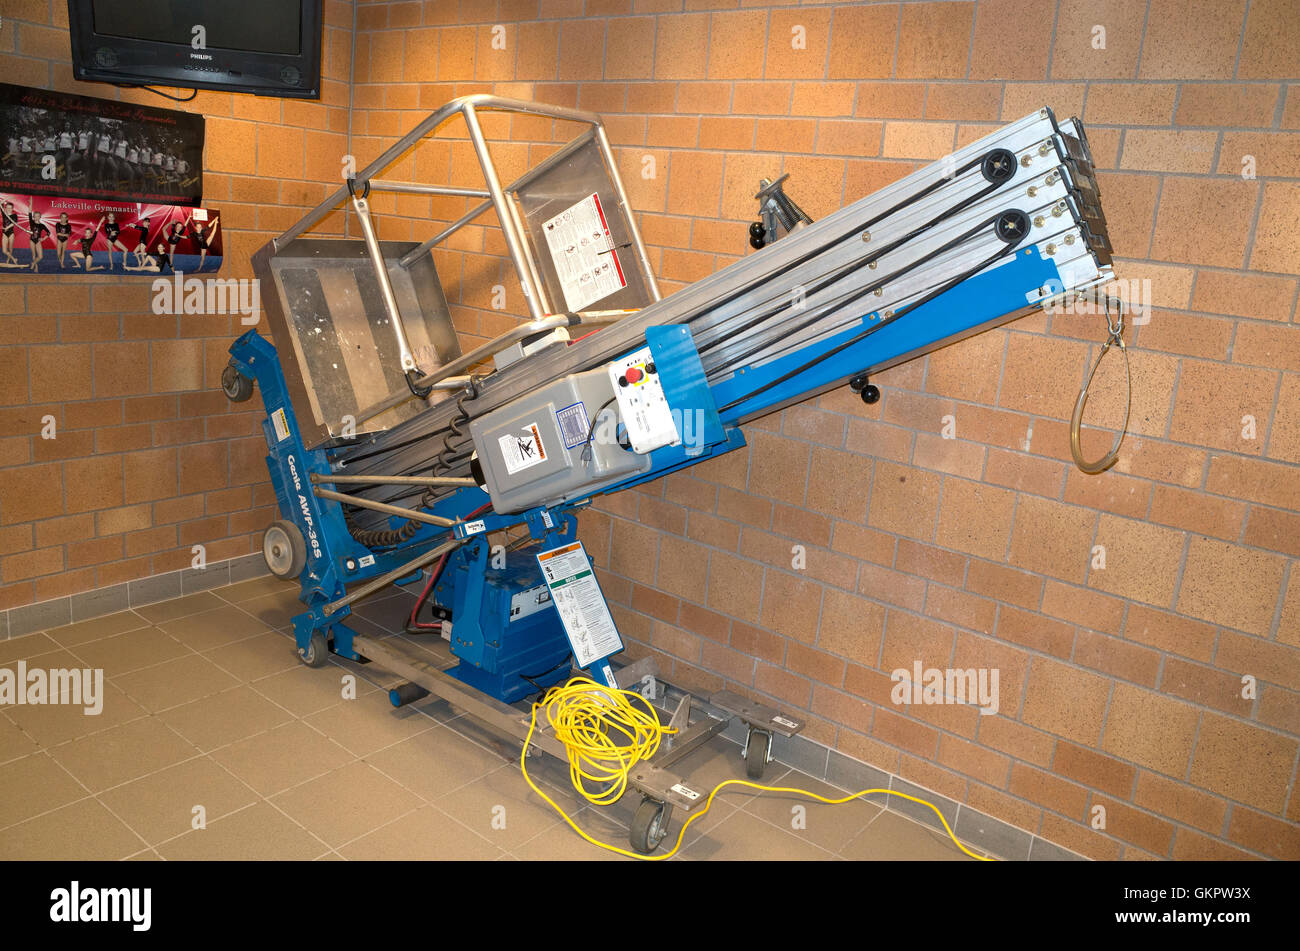 Tilt-back Genie AWP-36S Aerial Work Platform in compact position at high school gymnasium. Lakeville Minnesota MN - Stock Image